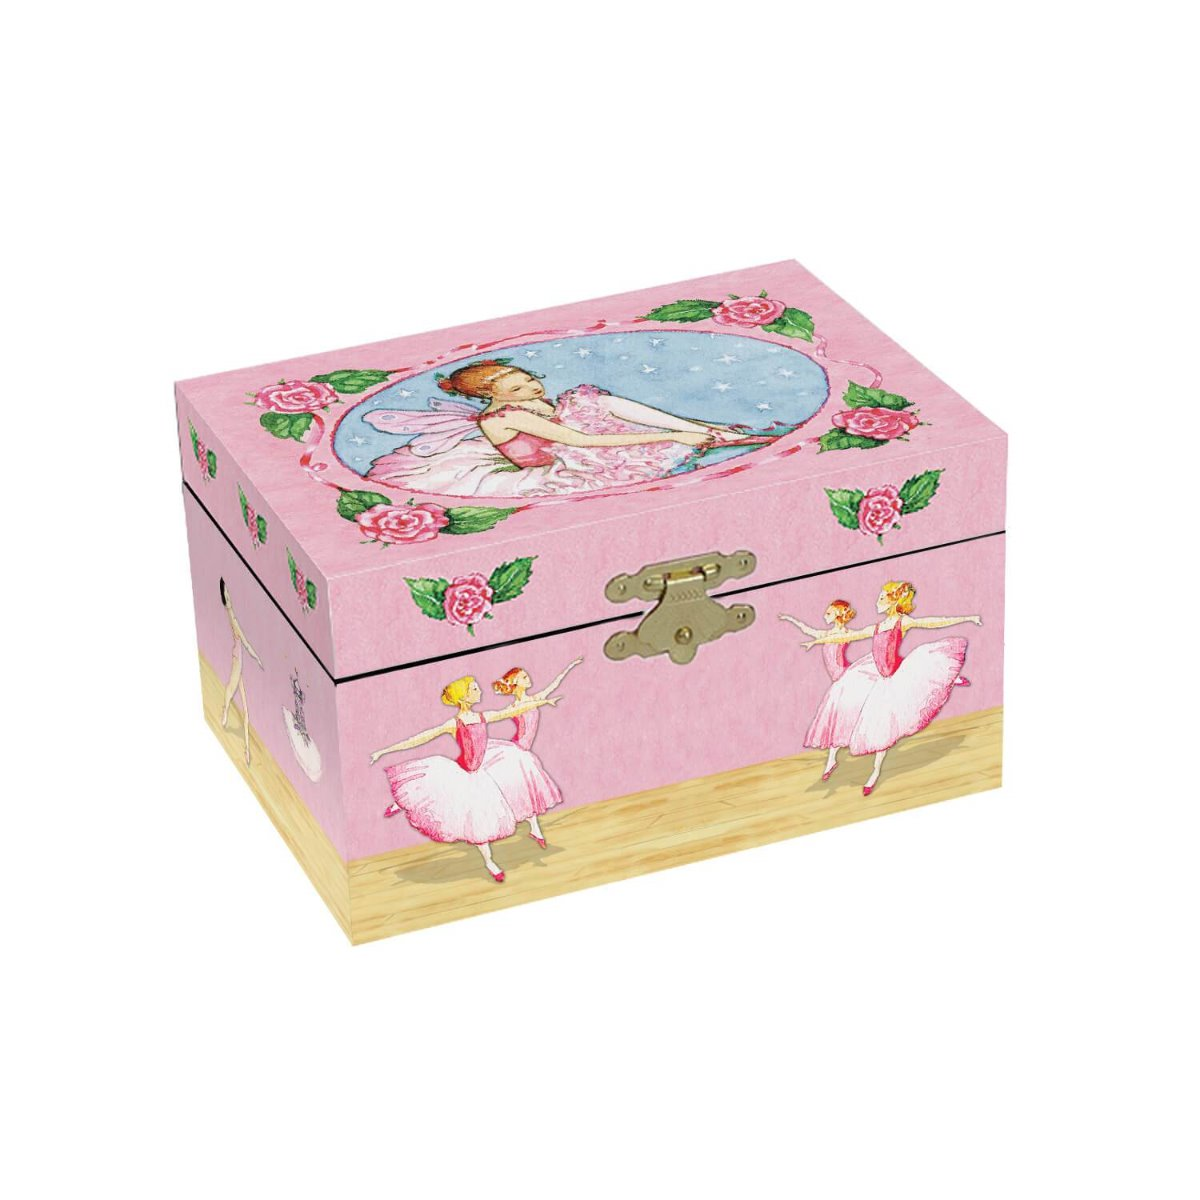 Ballerina Jewellery Box at Little Sprout